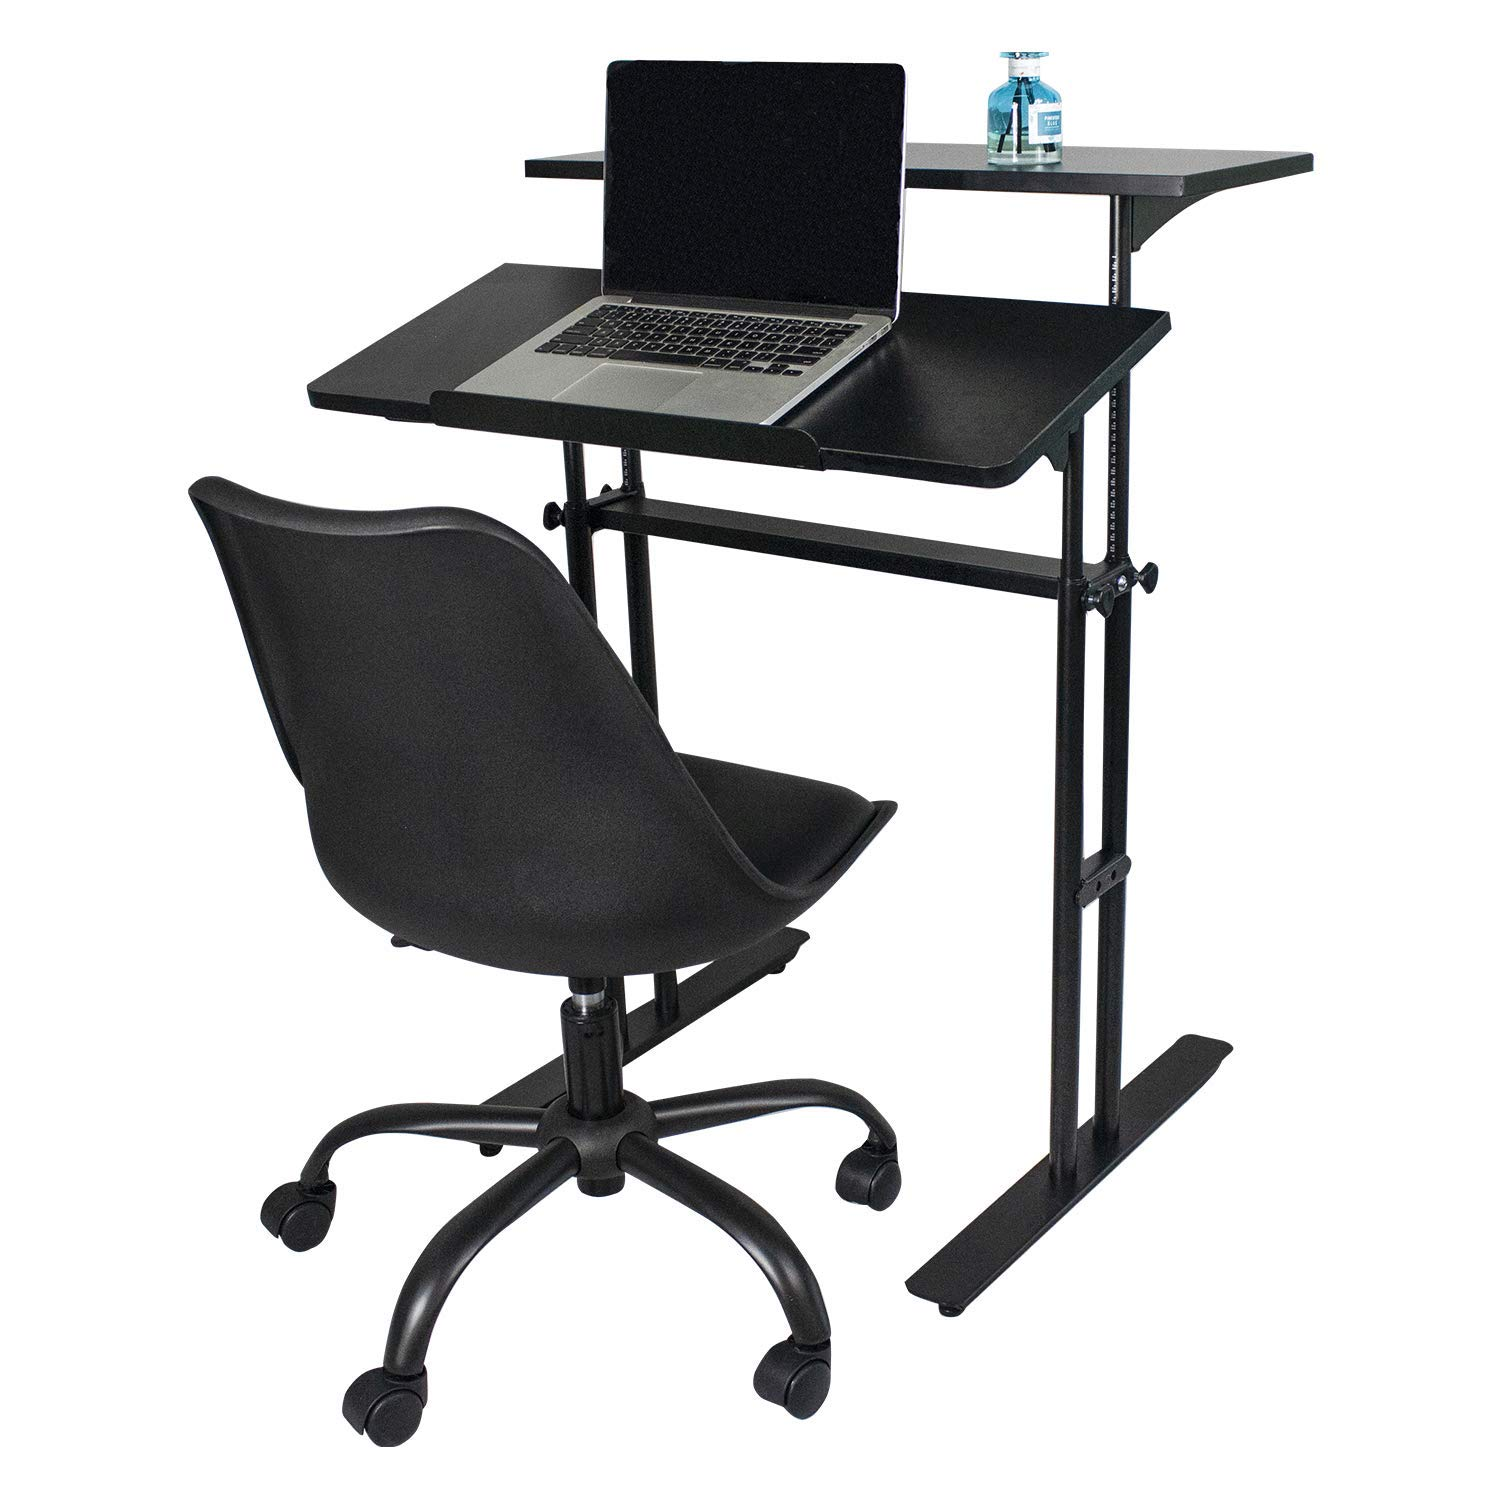 Heyesk Stand Up Desk Height Adjustable Home Office Desk with Standing (Black) by heyesk (Image #2)